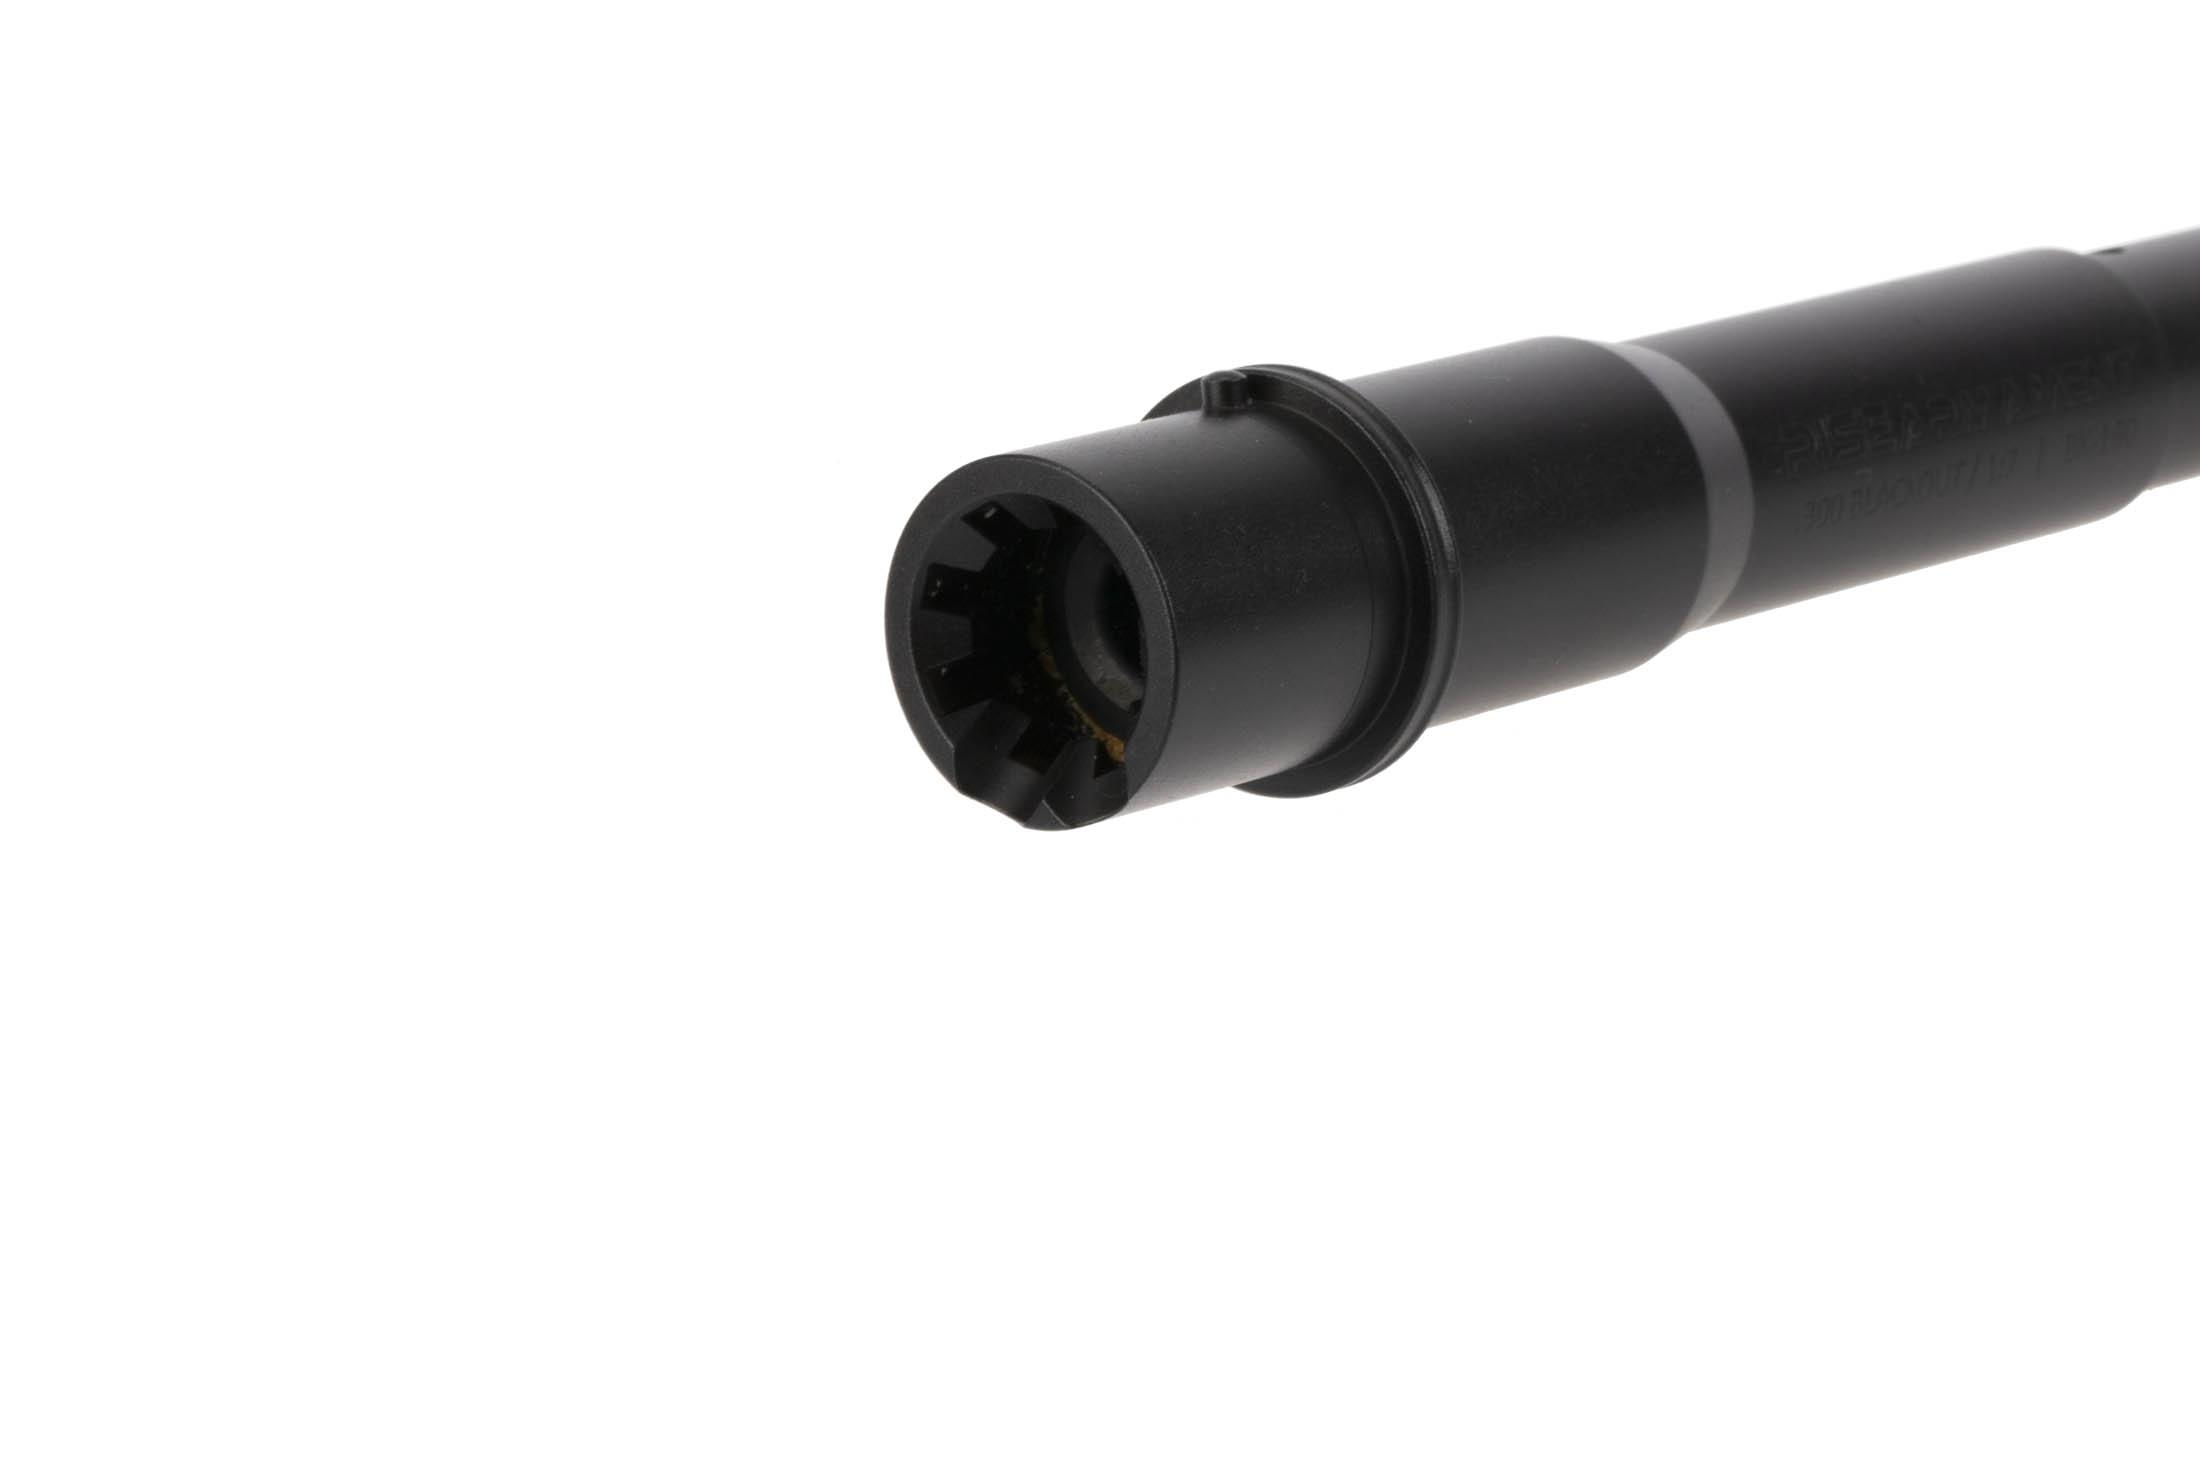 RISE Armament 16in 300 BLK barrel features M4 feed ramps.